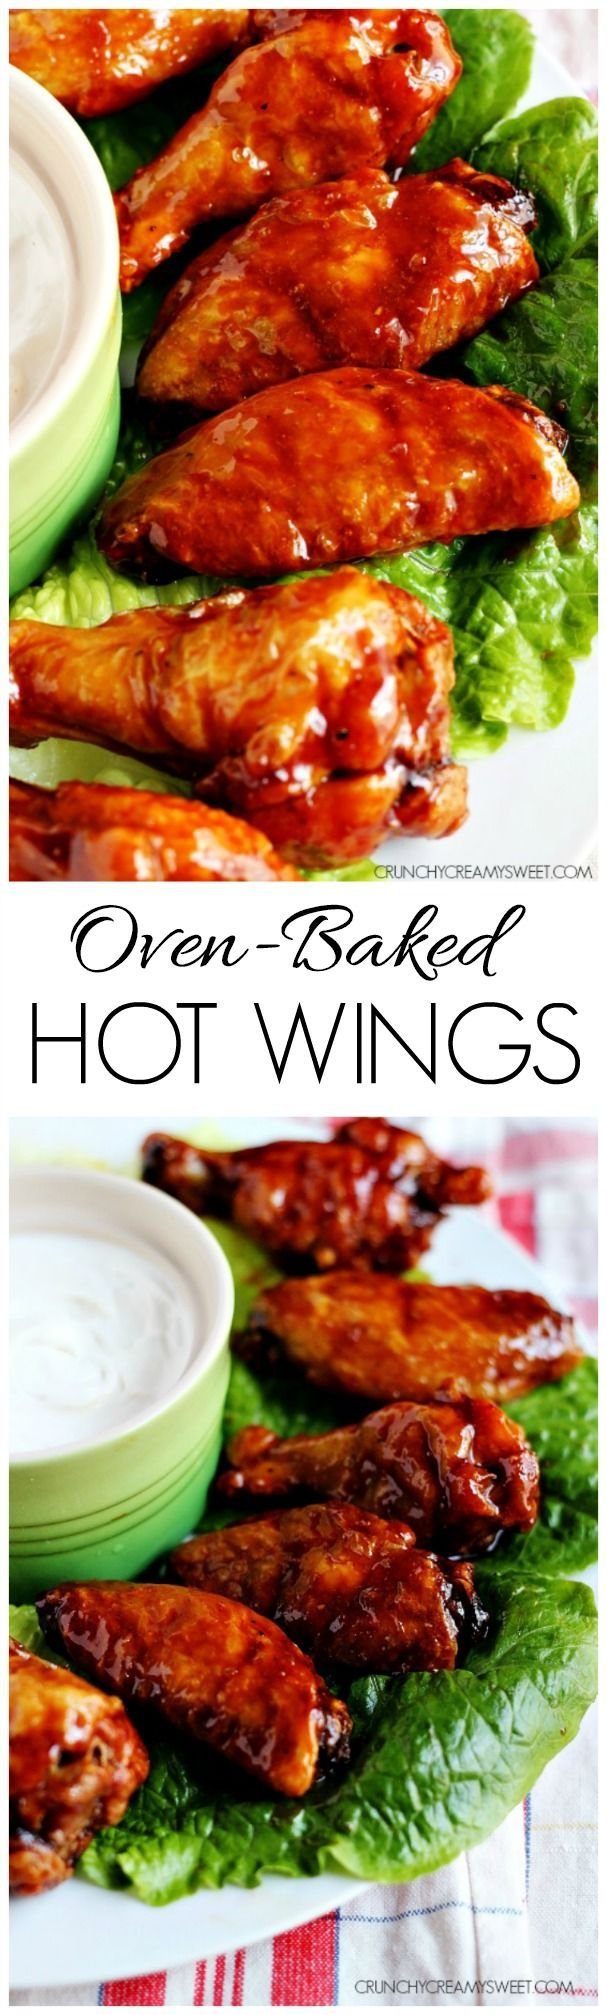 Oven-Baked Hot Wings - healthier version for the hot wing lovers! Chicken wings baked in the oven to a crispy perfection and tossed in a sweet and spicy sauce.